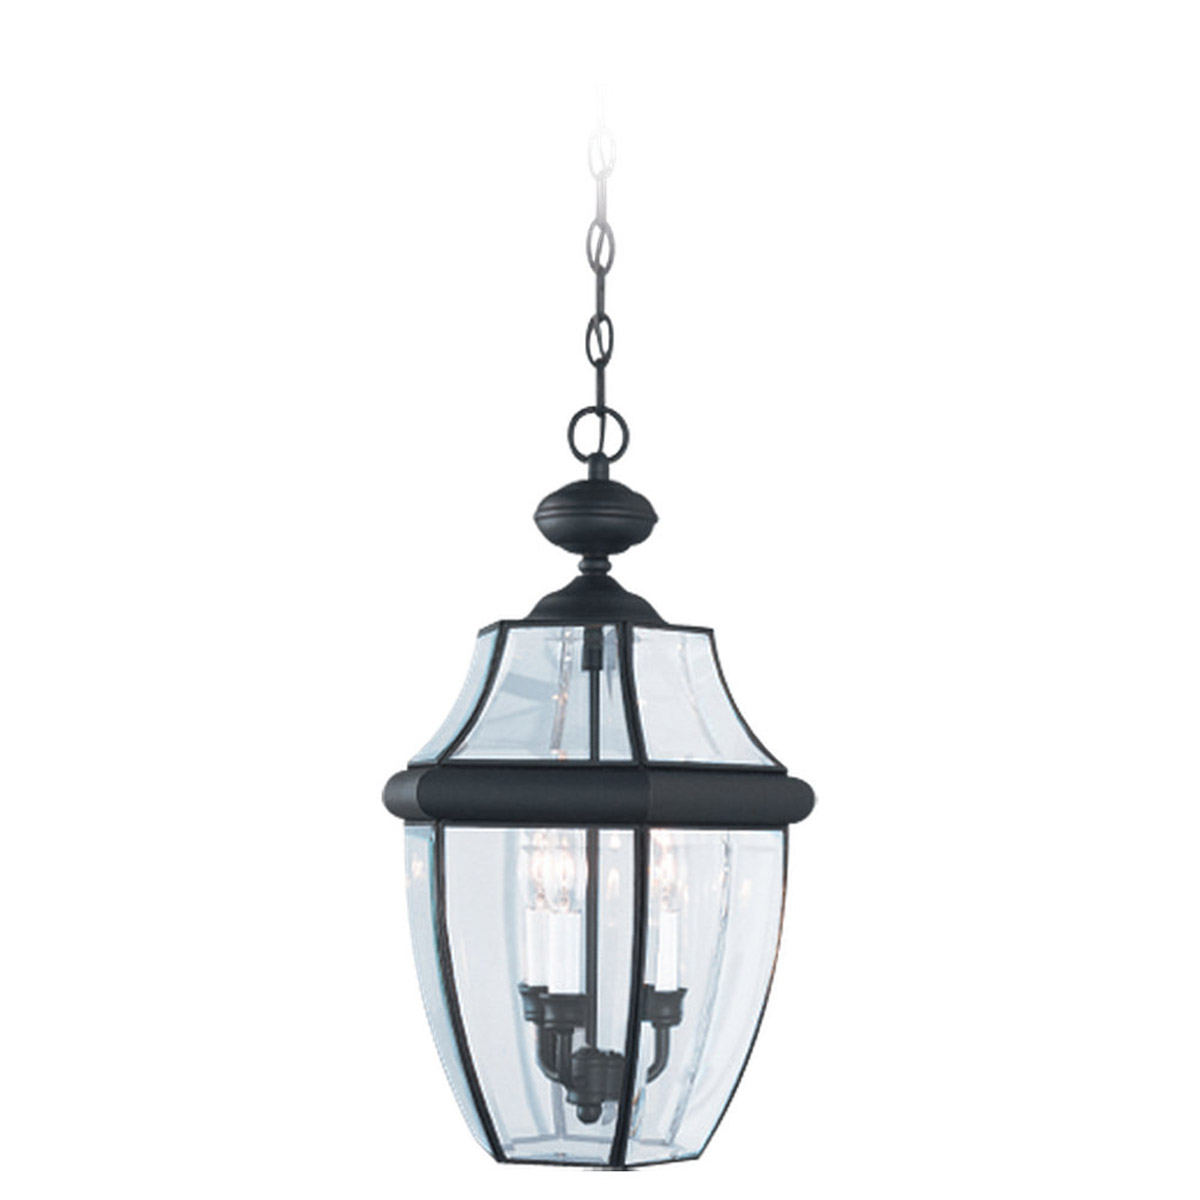 Sea Gull Lighting Lancaster 3 Light Outdoor Pendant in Black 6039-12 photo